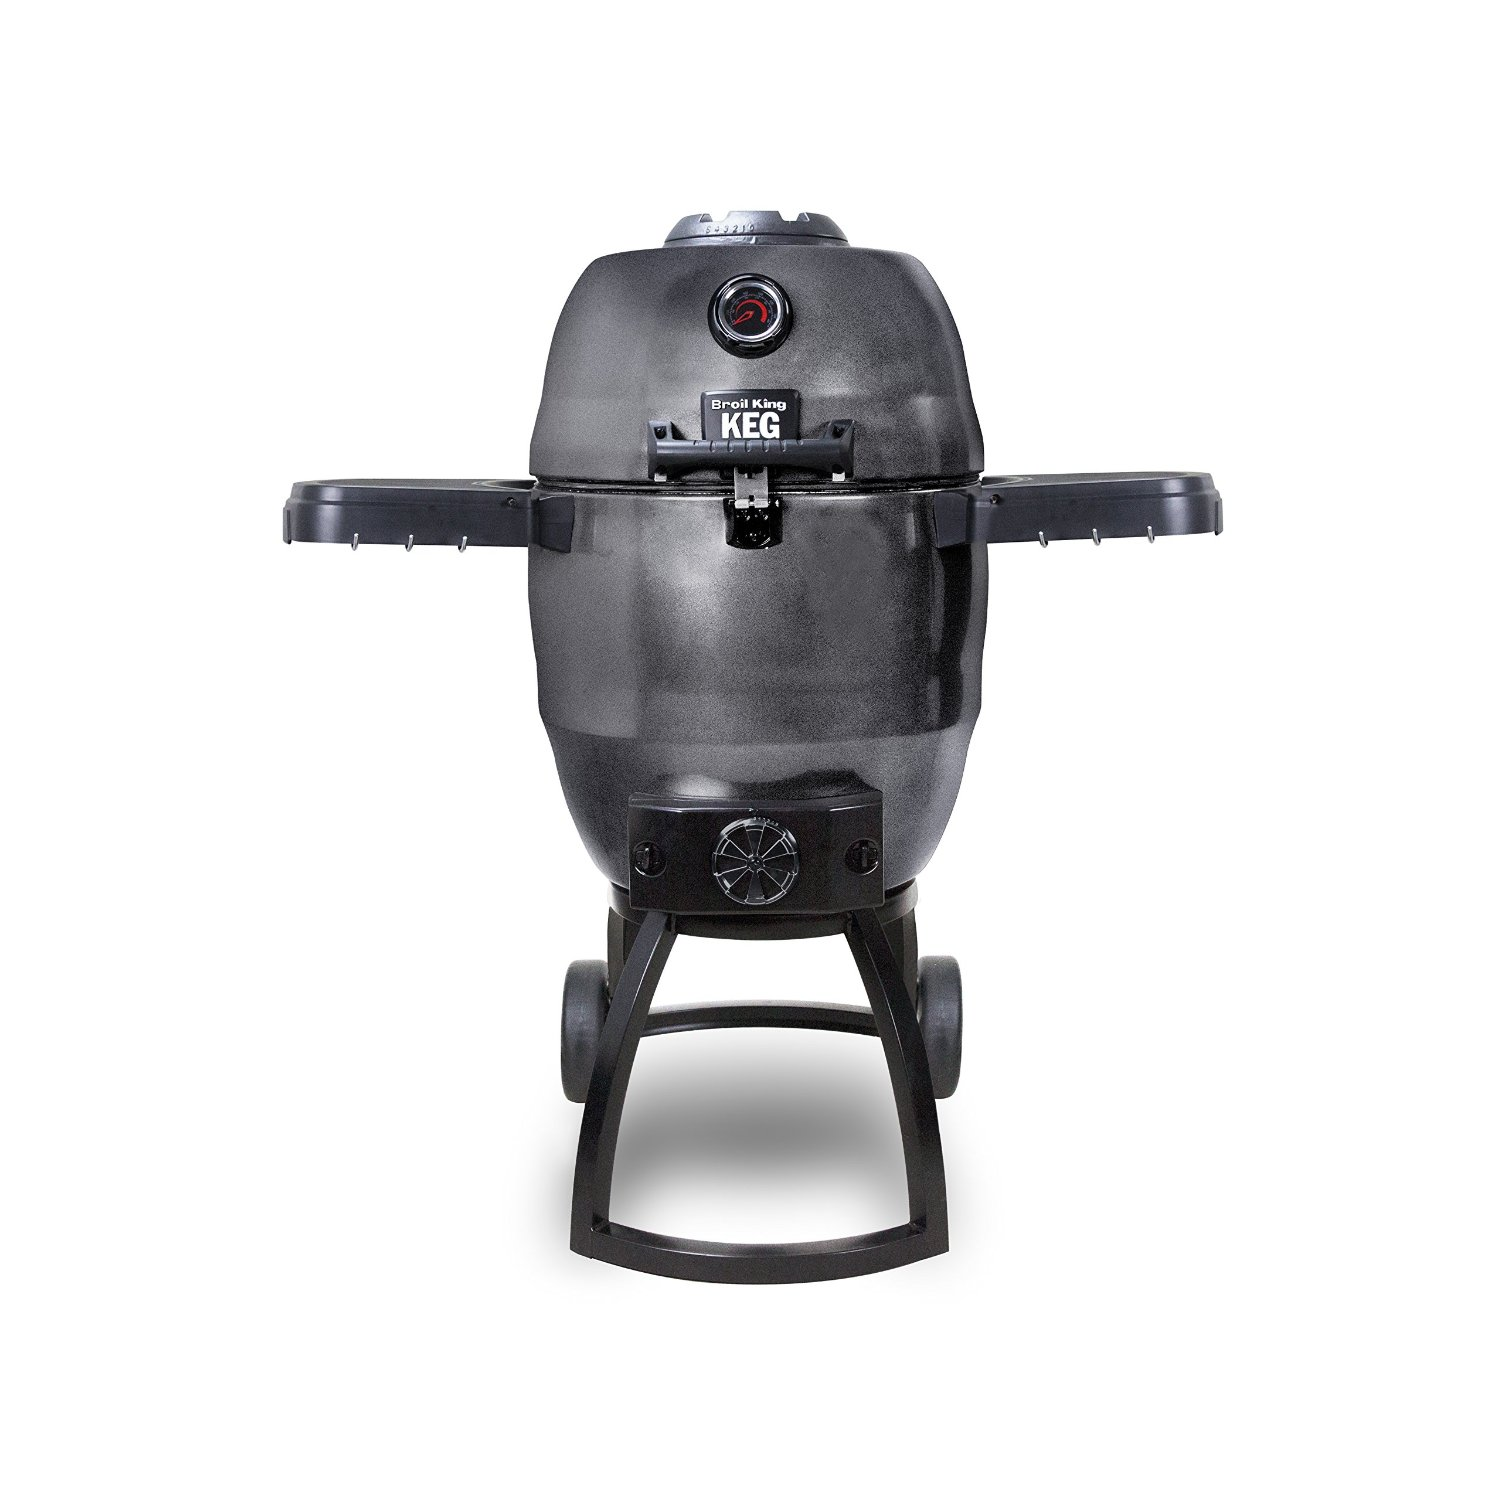 Broil King Keg 5000 Barbecue Grill Review